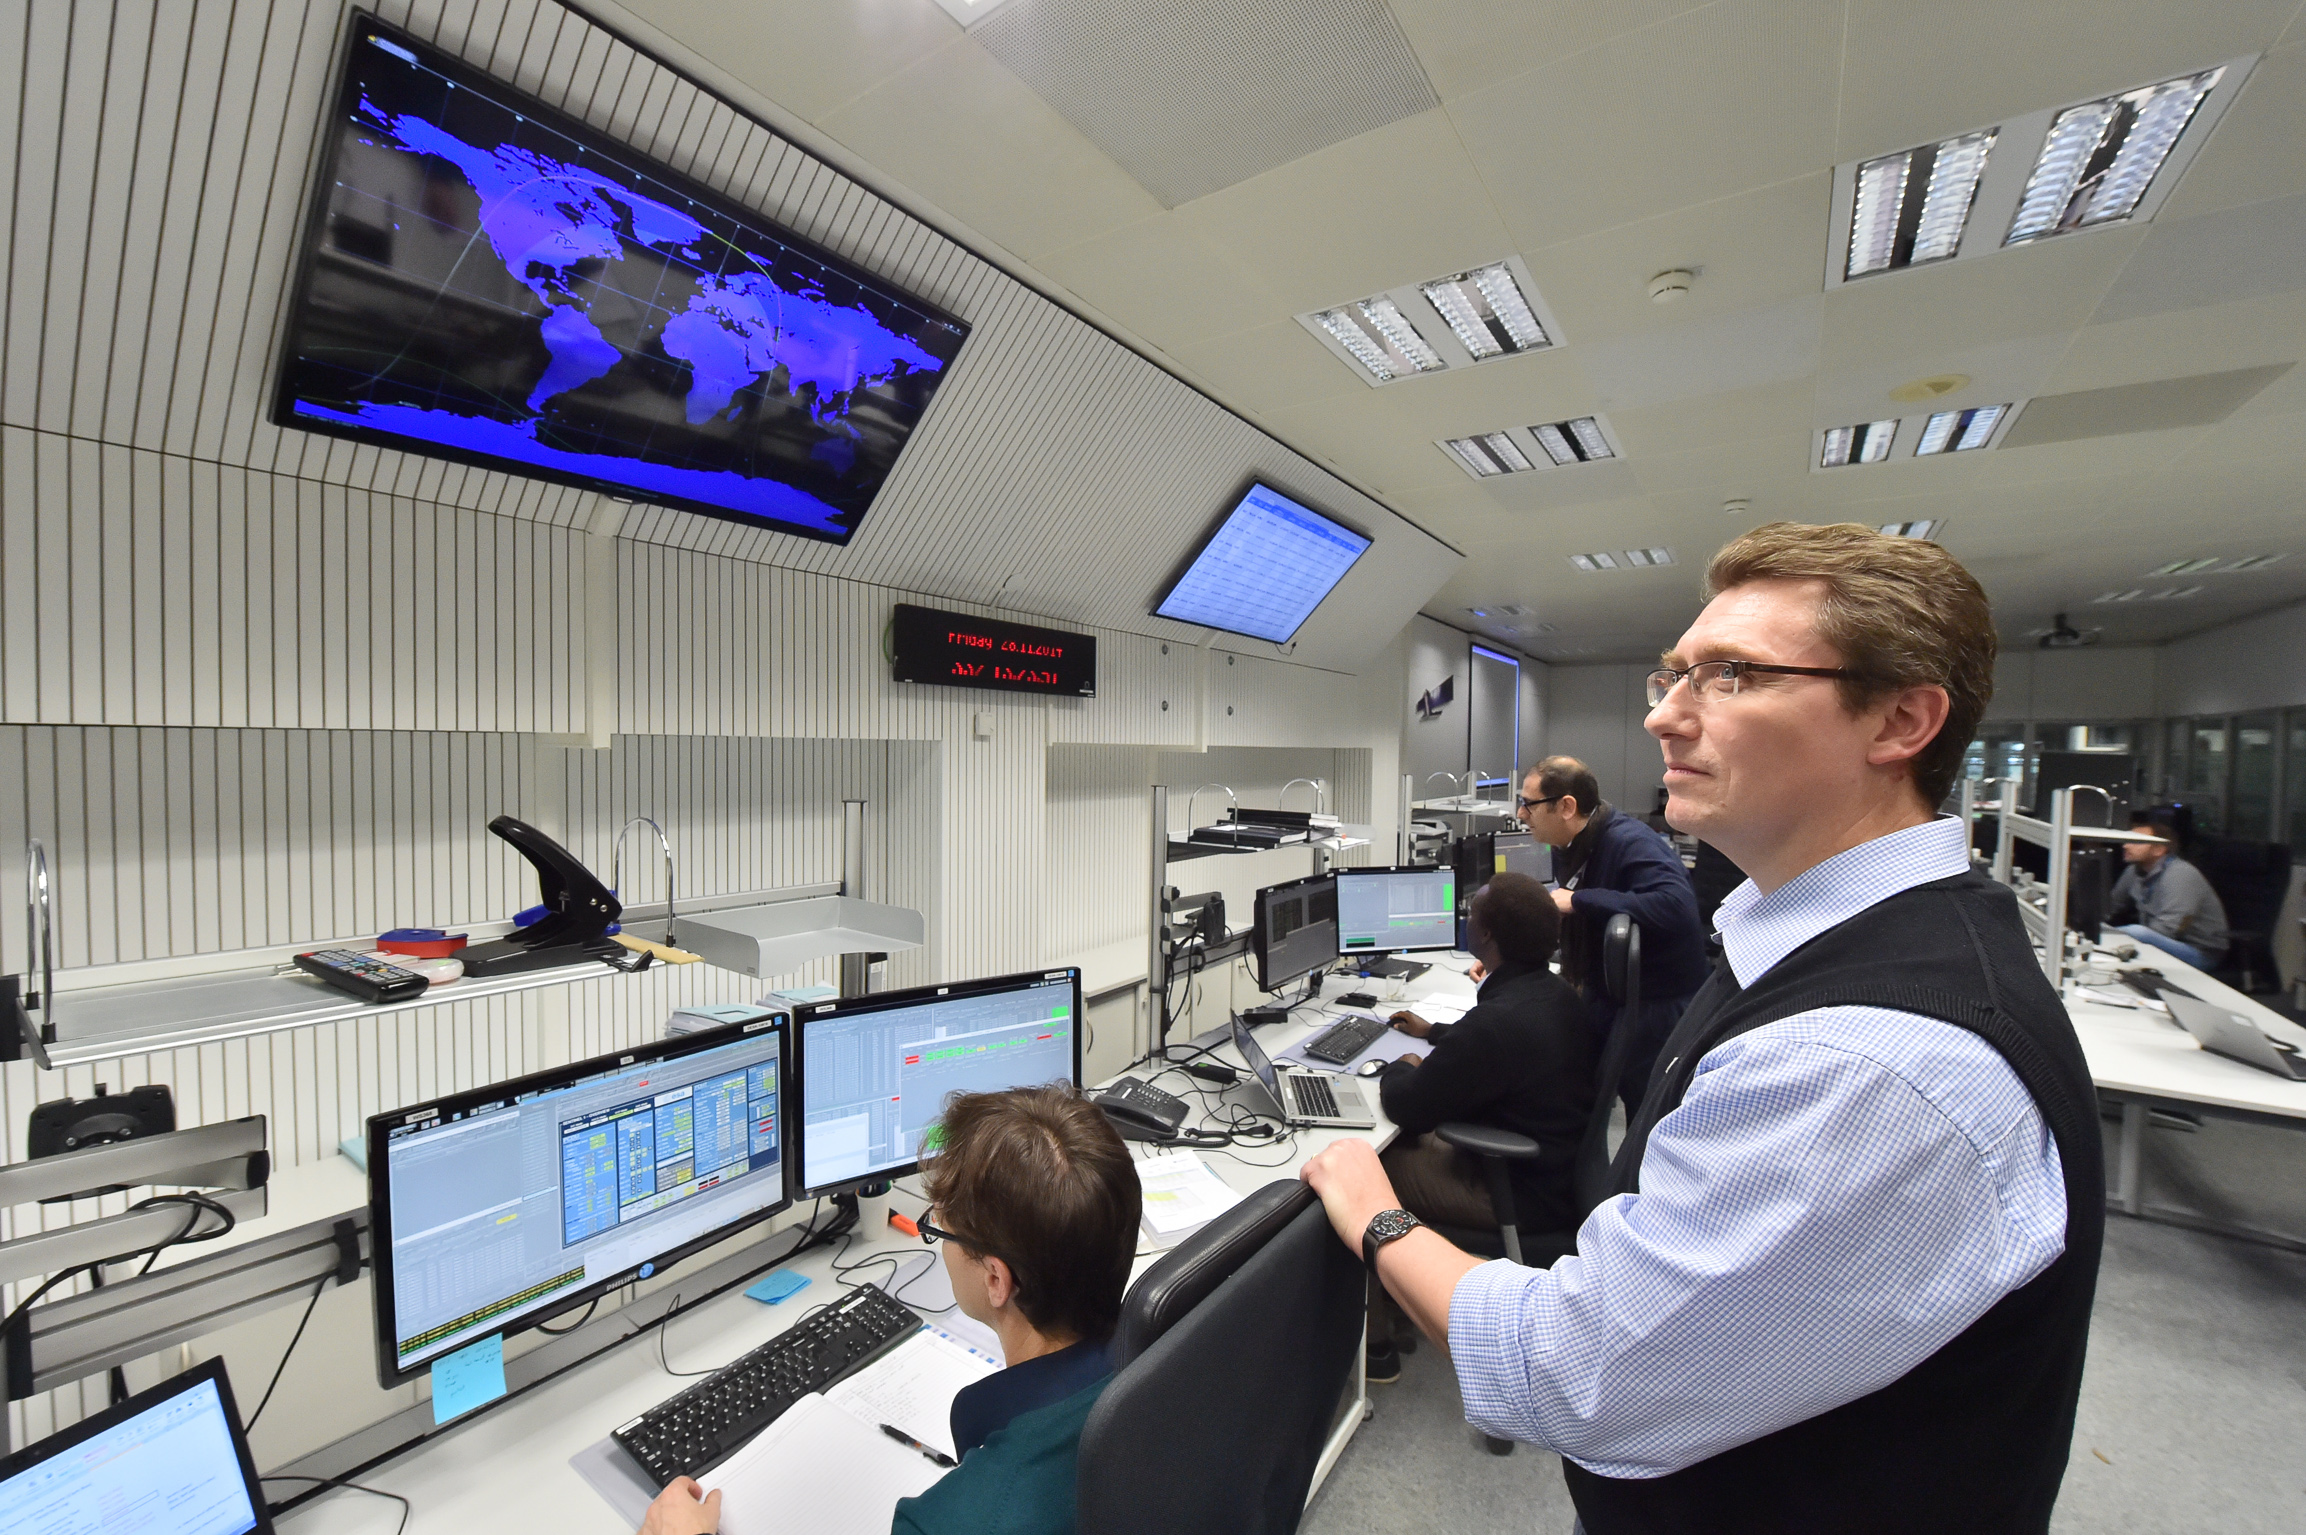 ESA's Space Operations Centre, ESOC, in Darmstadt, Germany